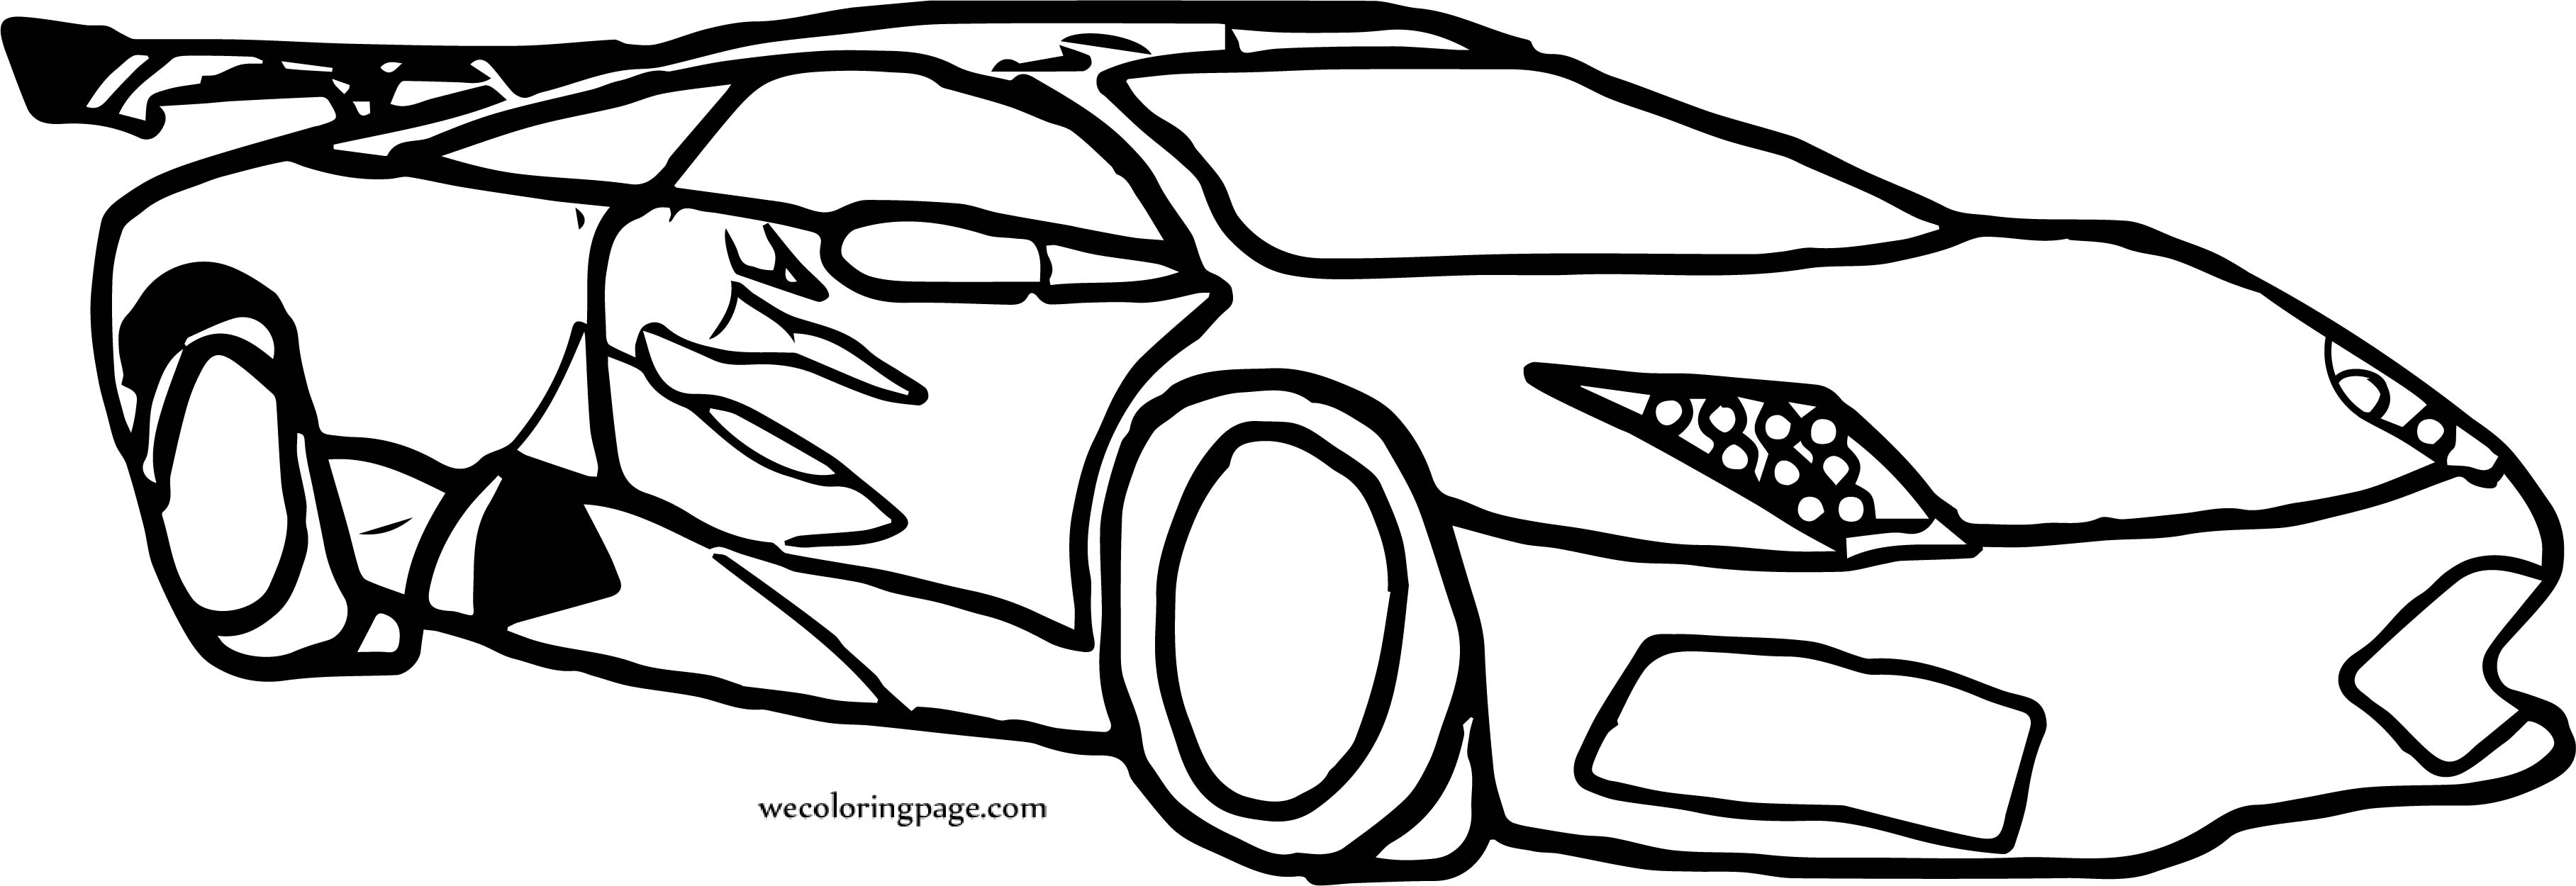 Car Wecoloringpage Coloring Page 162